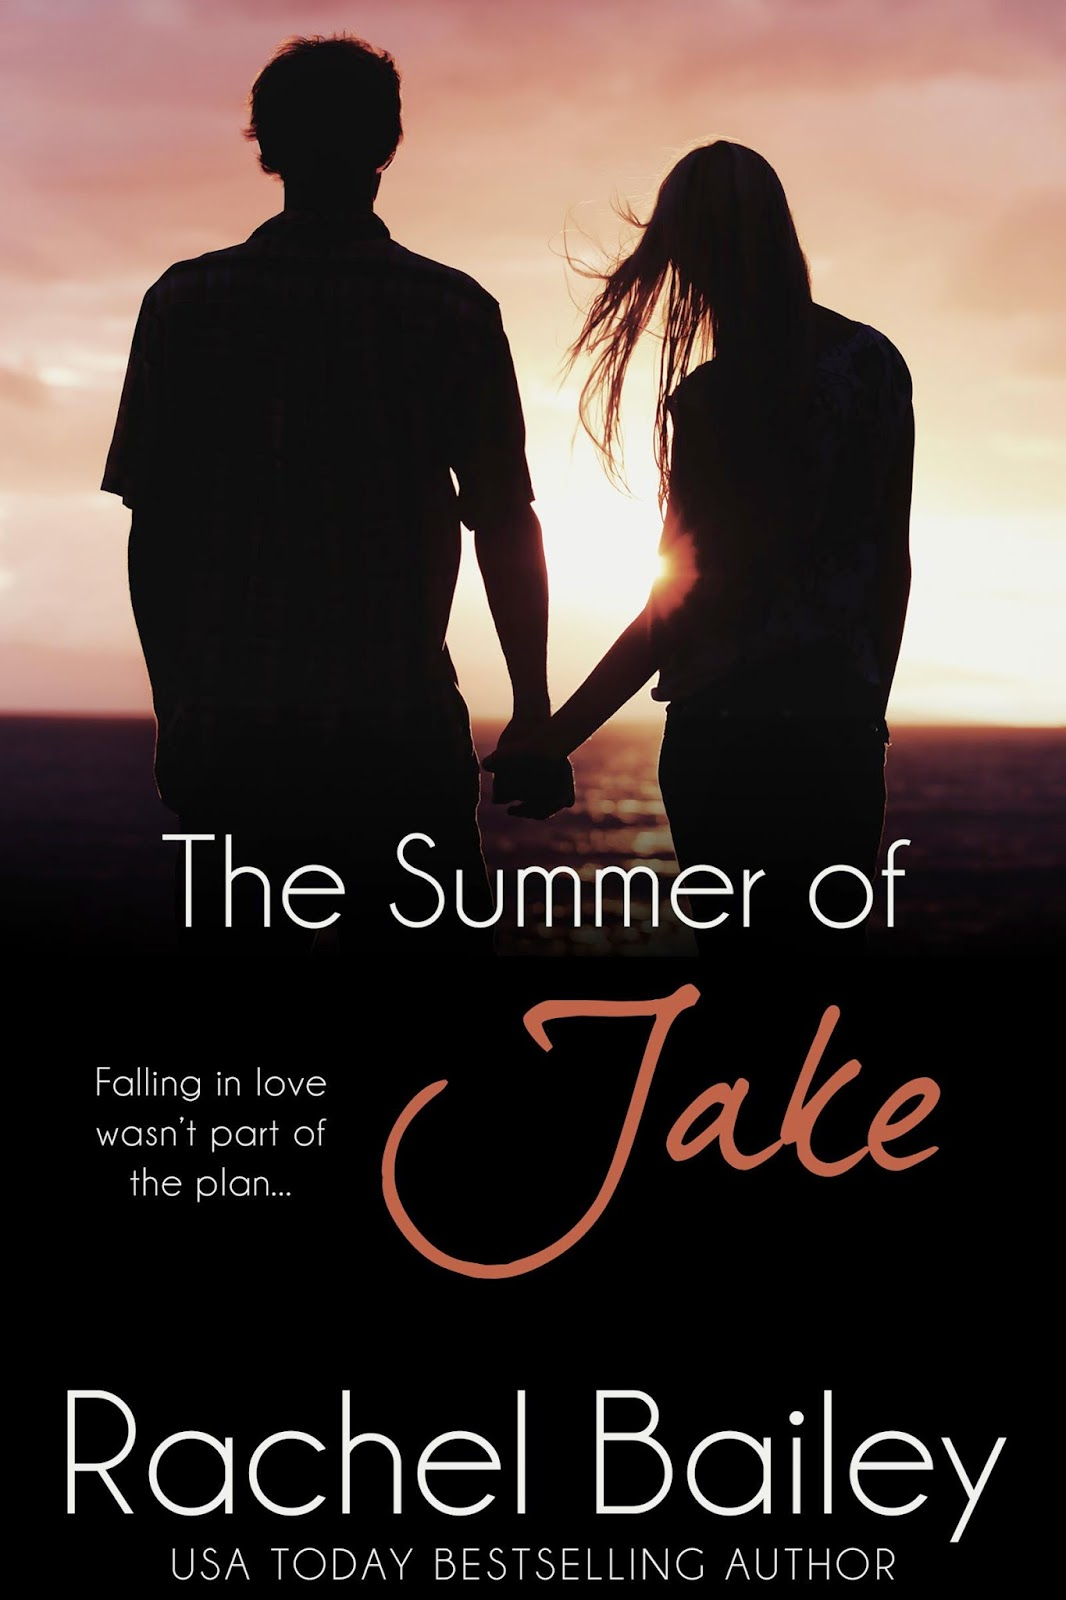 http://www.amazon.com/Summer-Jake-Entangled-Embrace-ebook/dp/B00LRY2TWU/ref=sr_1_1?ie=UTF8&qid=1409230088&sr=8-1&keywords=the+summer+of+jake